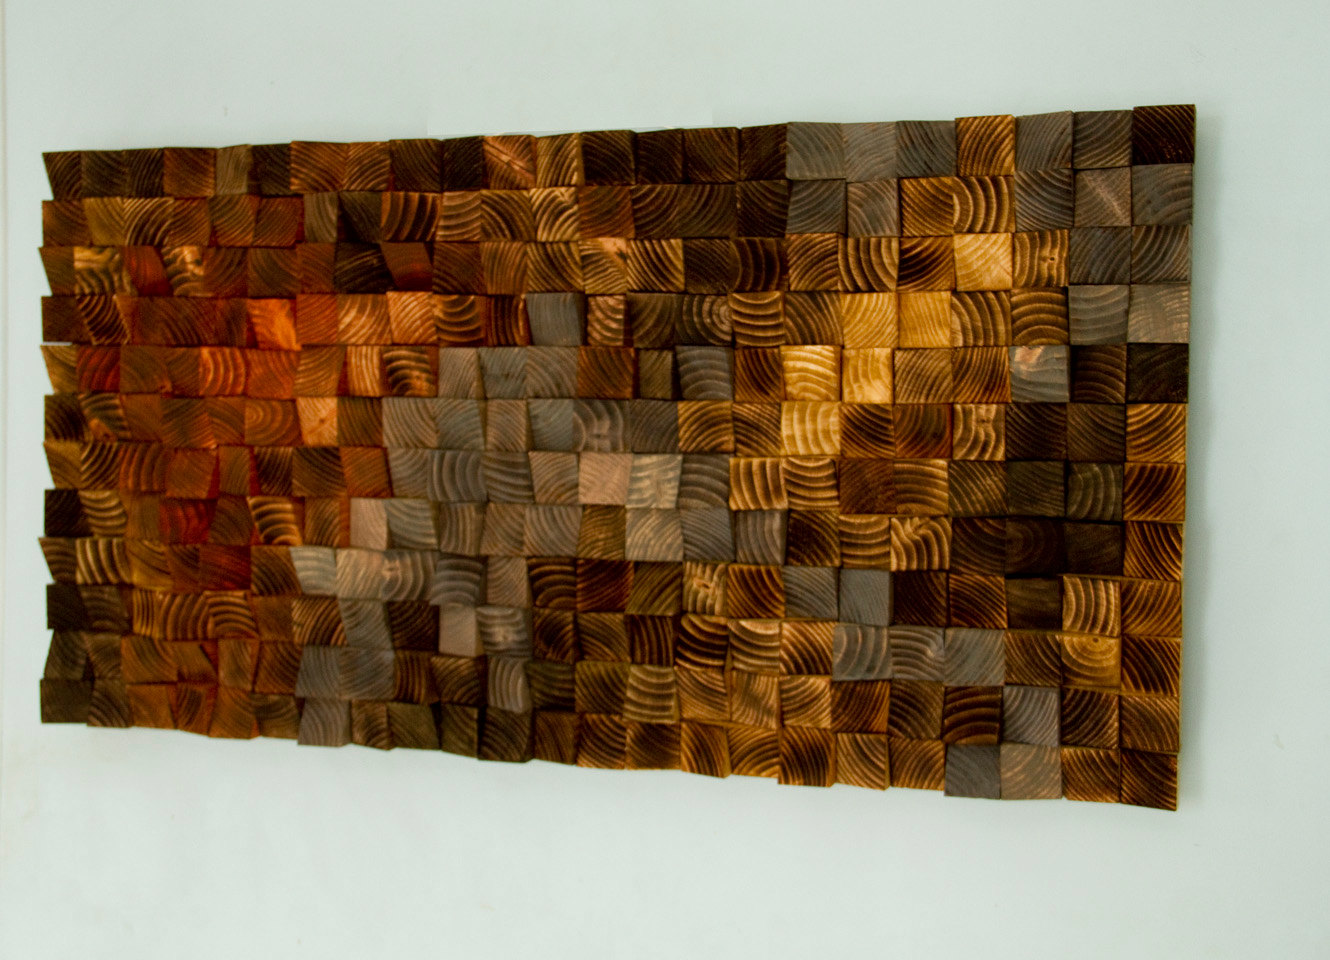 Wood wall art wood sculpture mosaic geometric art art for Wall artwork paintings